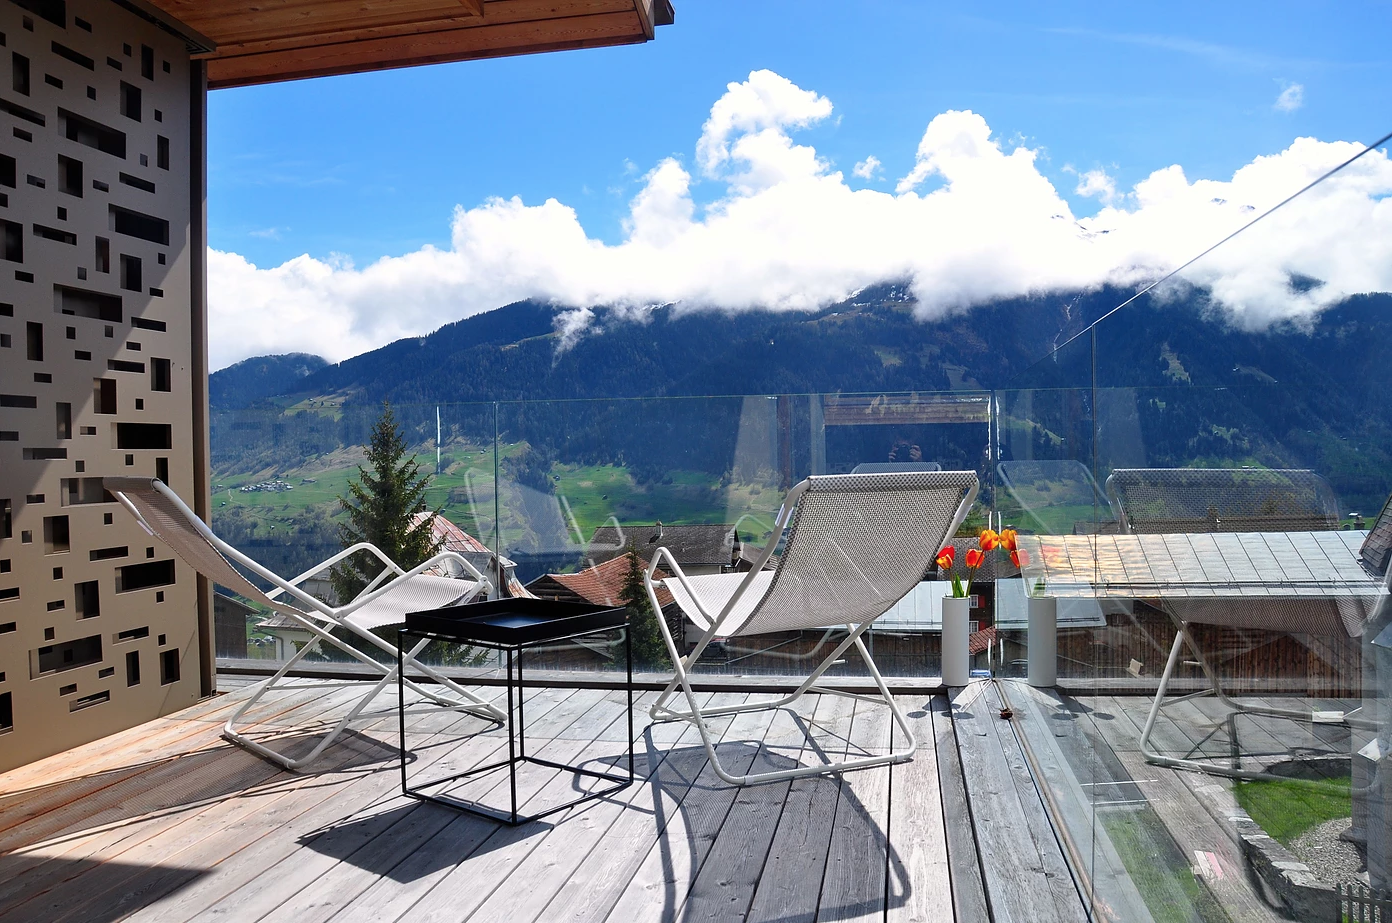 Situated in the alpine village of Vignongn, with views of the Val Lumneziz (Vally of Light), this eco-friendly, Scandi-inspired vacation home has a sunny terrace where you can enjoy views.